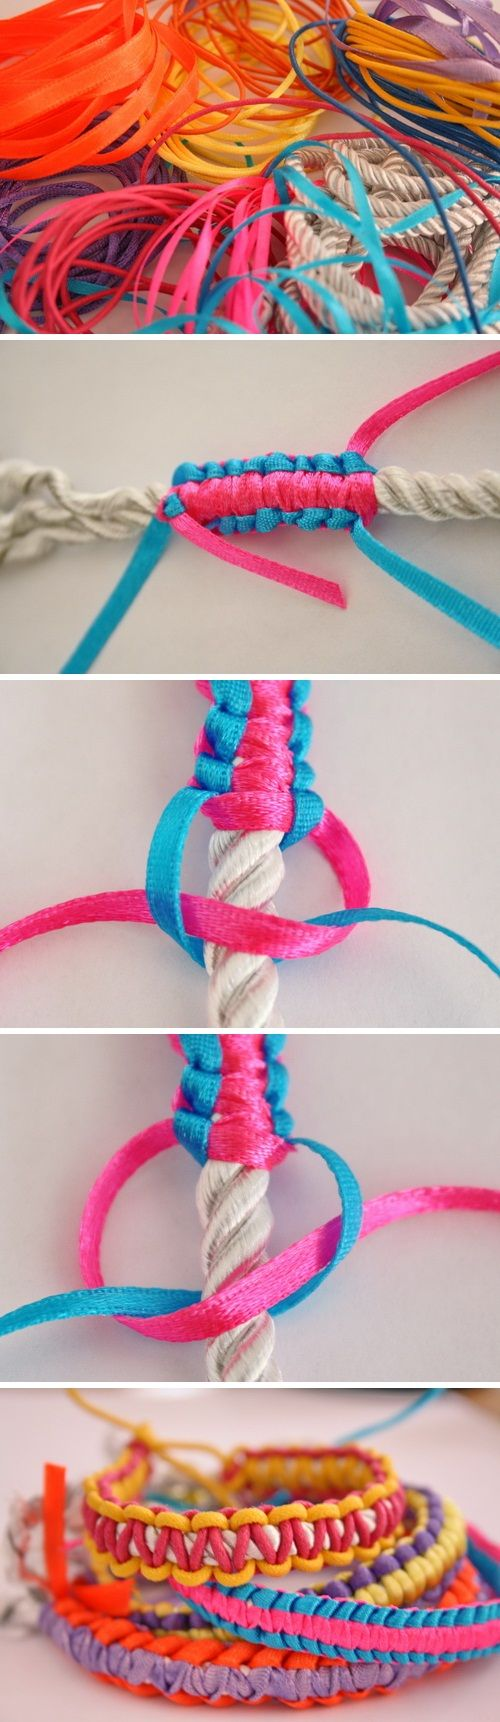 Wrapped hanger knot